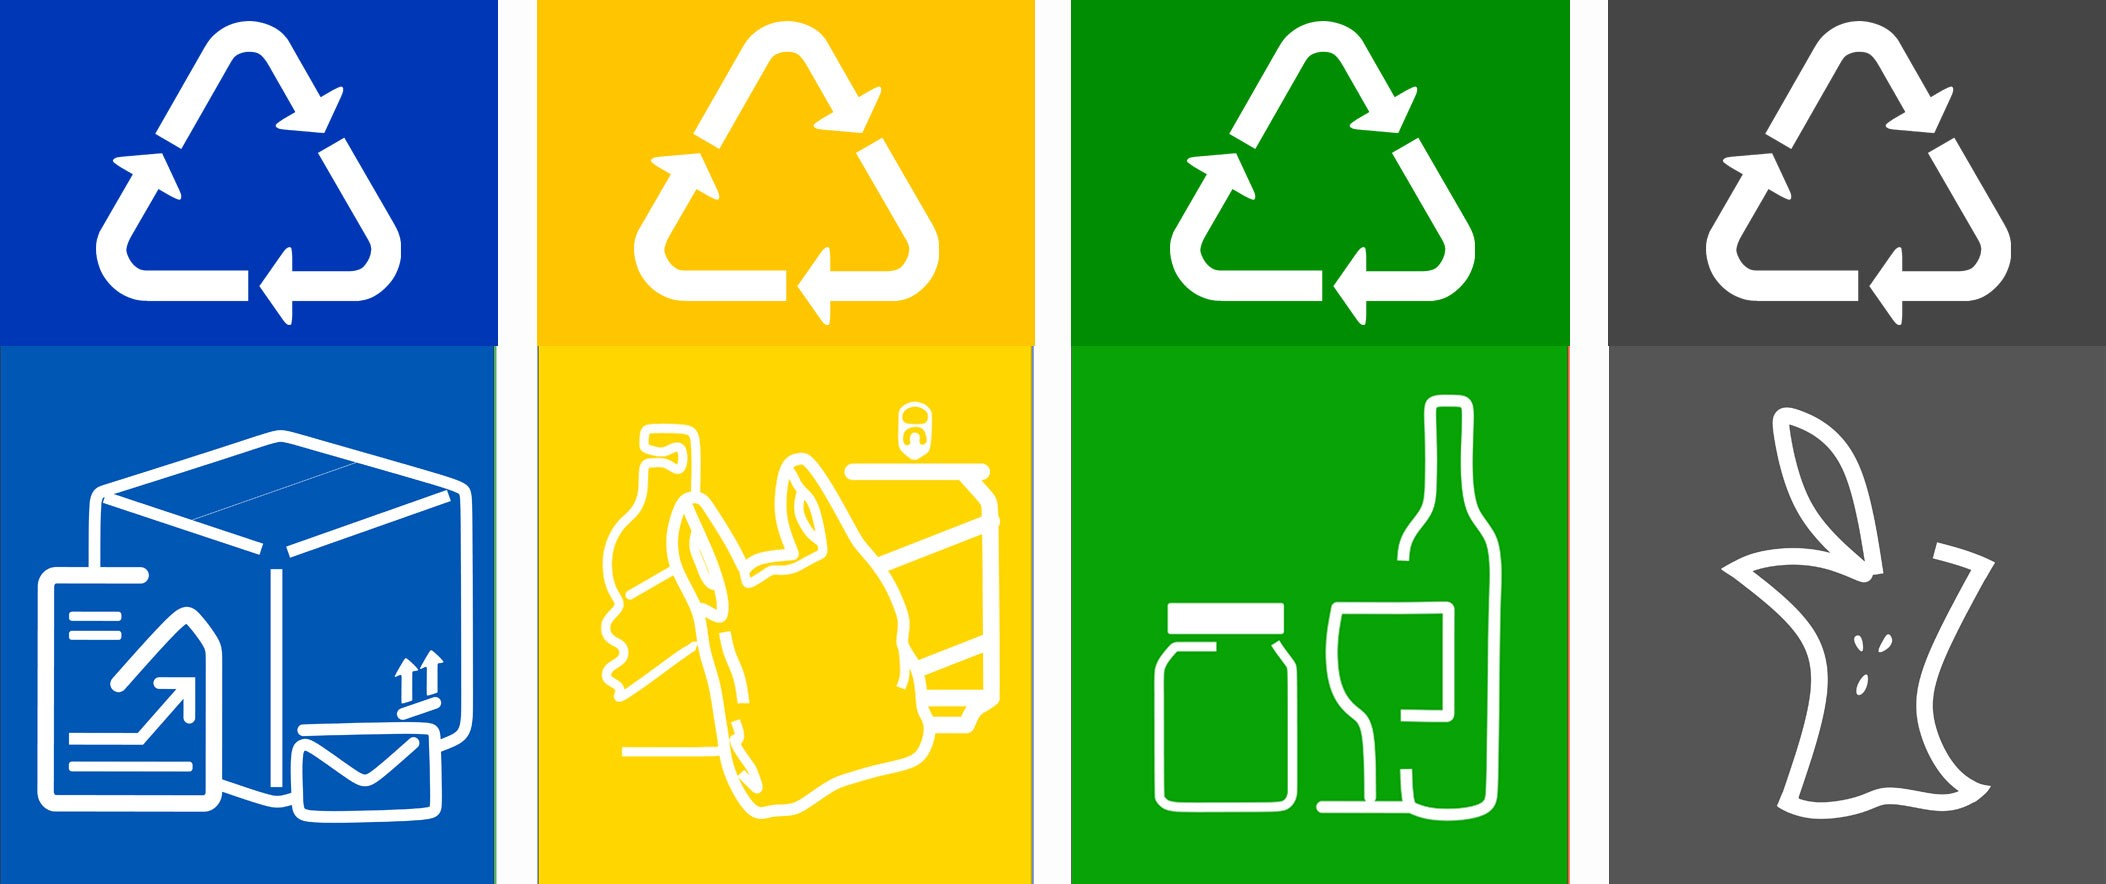 Free Printable Recycling Labels For Bins